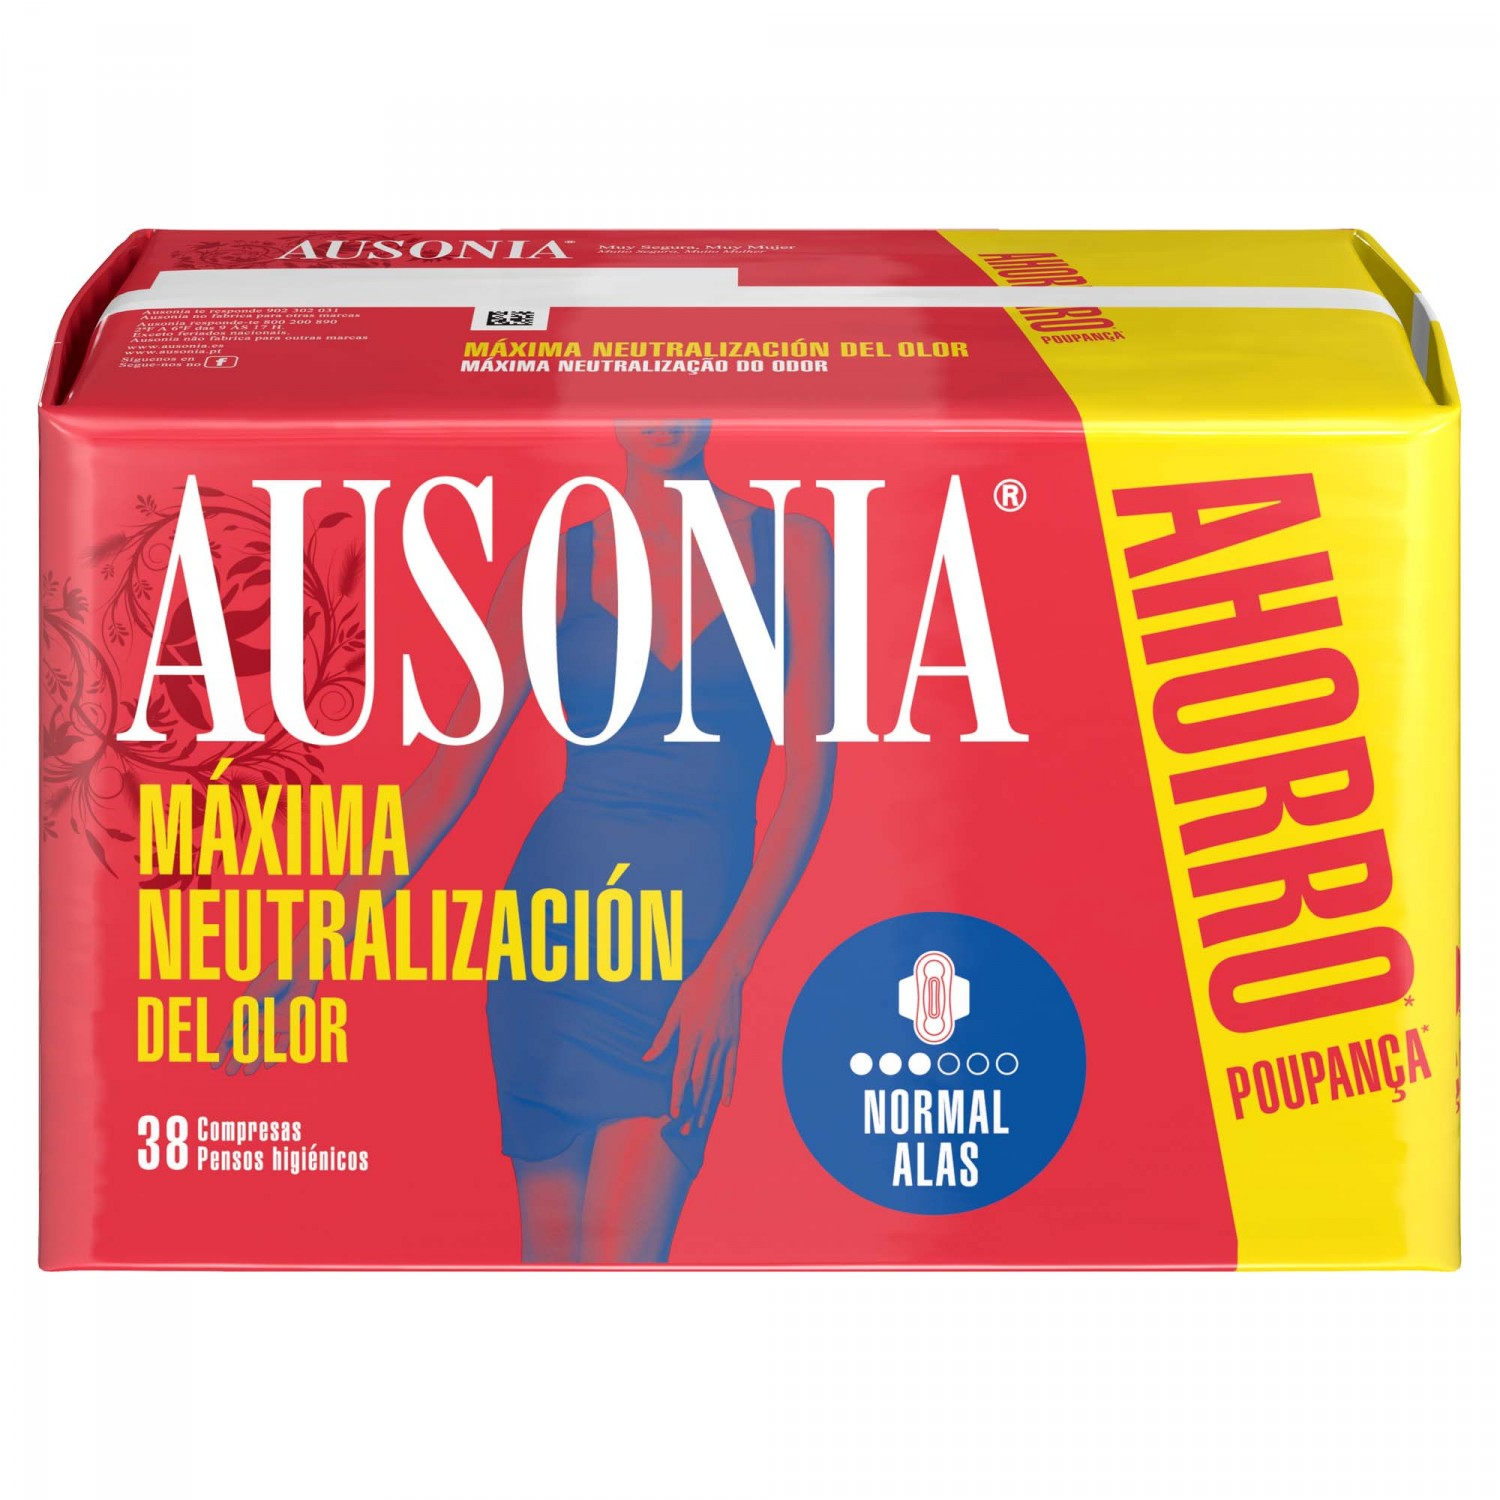 Ausonia compresa normal con alas air dry 38 en paquete